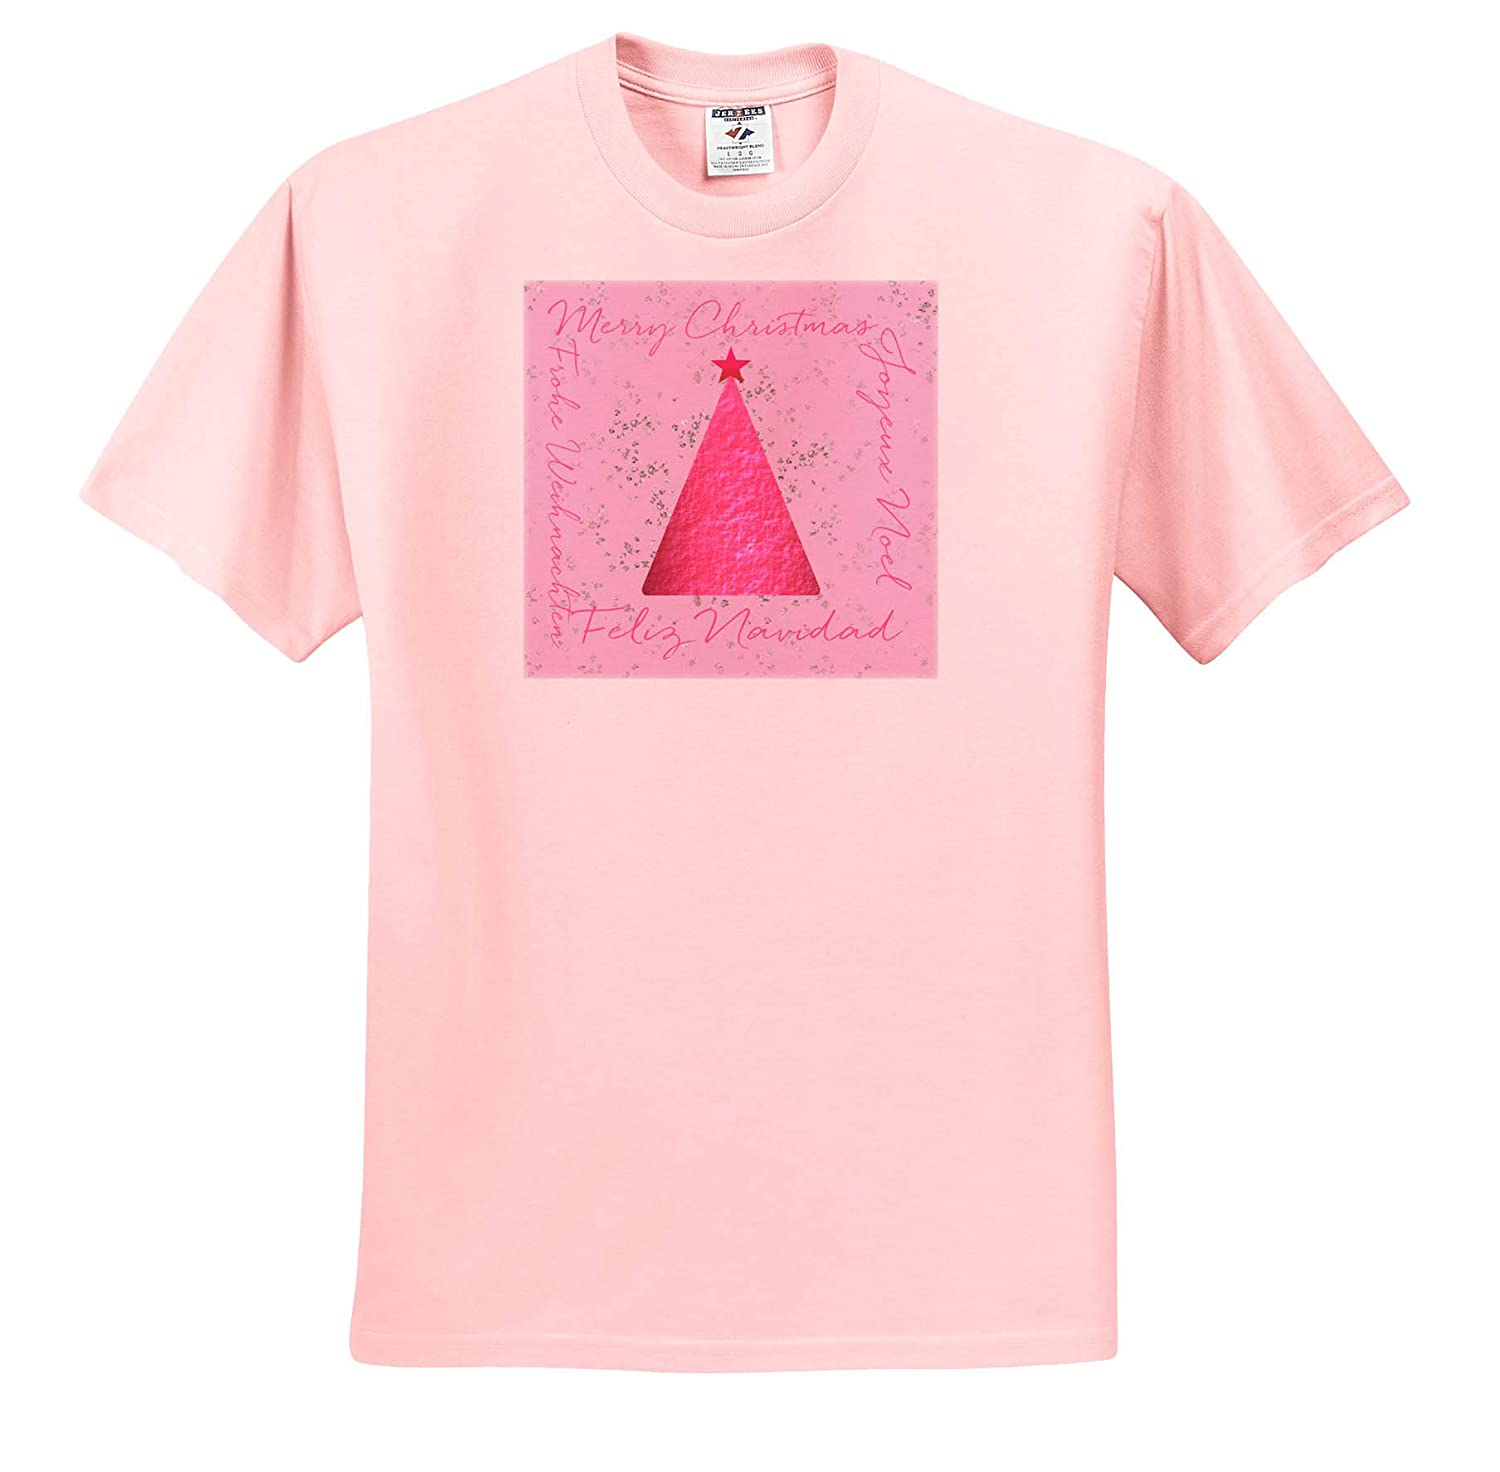 3dRose Andrea Haase Christmas Illustration T-Shirts Pink Christmas Tree Design with Text Frame